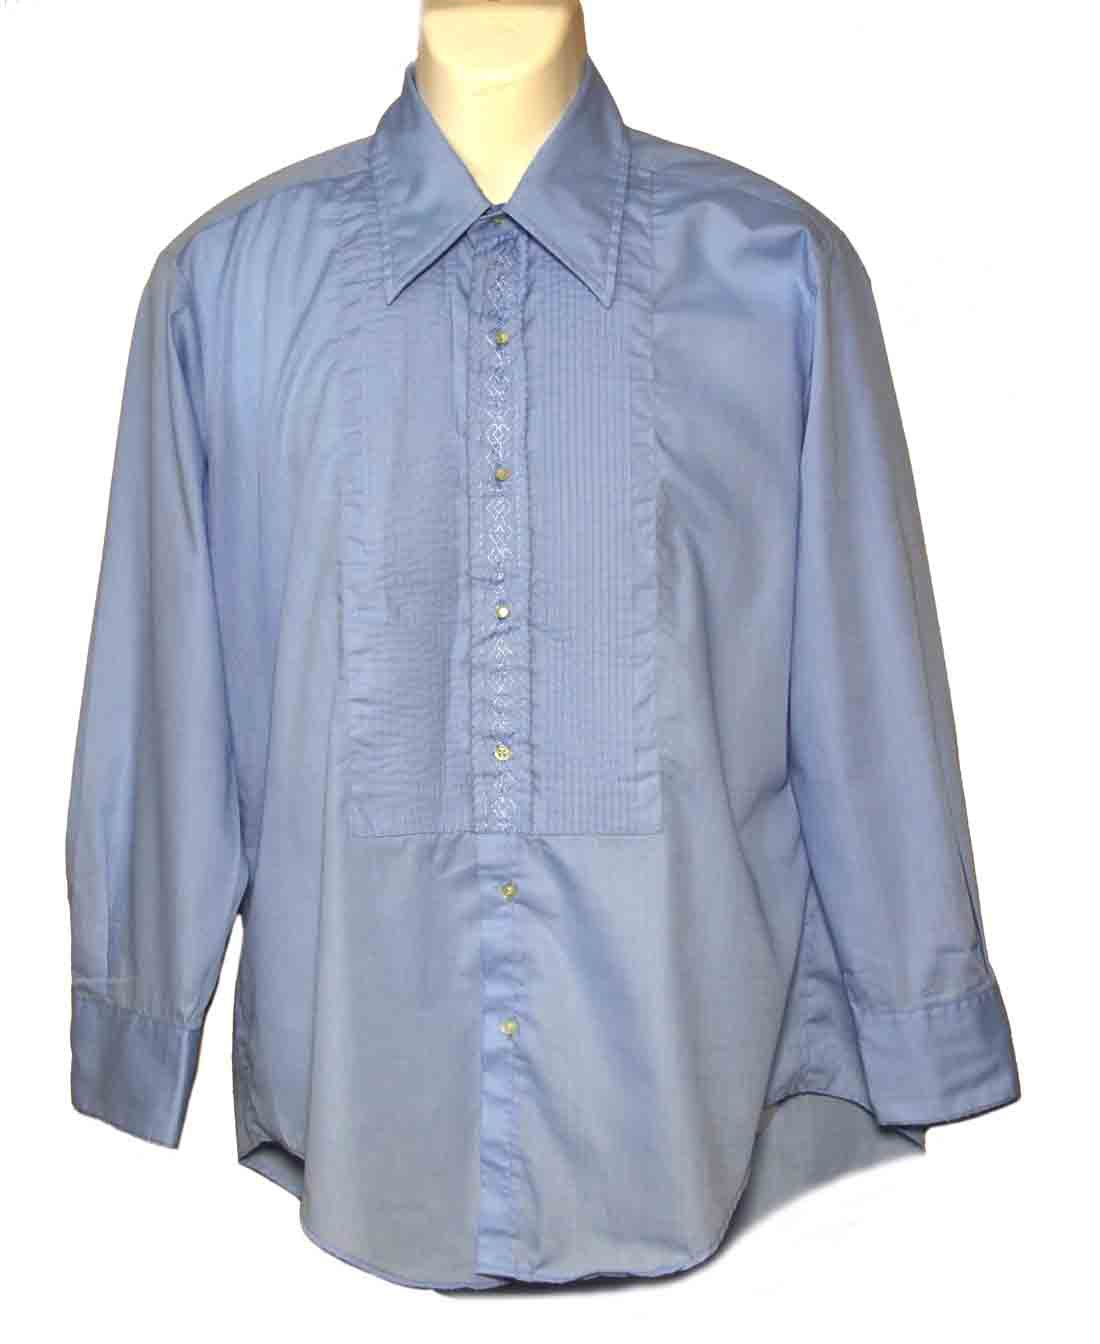 Vintage 1970s After Six Tuxedo Shirt Blue Embroidered Men's Size 16 X 32